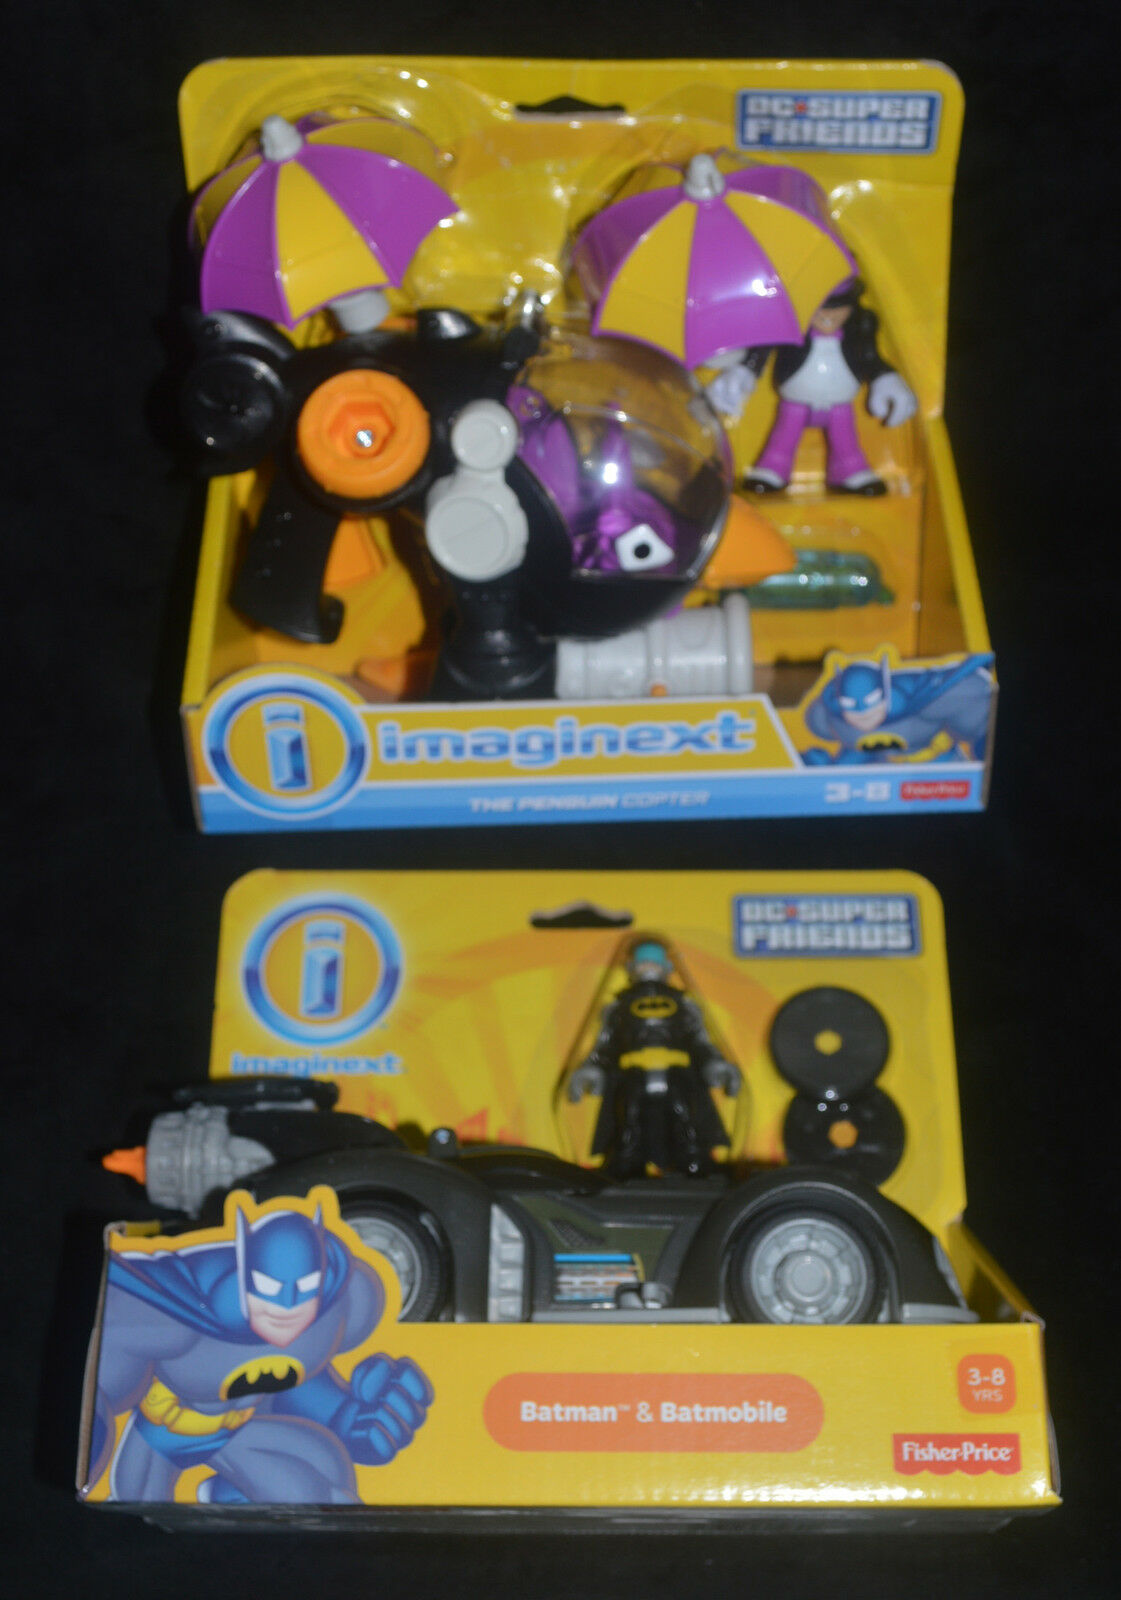 PENGUIN COPTER & BATMOBILE w Exclusive Batman Figure Imaginext MIP